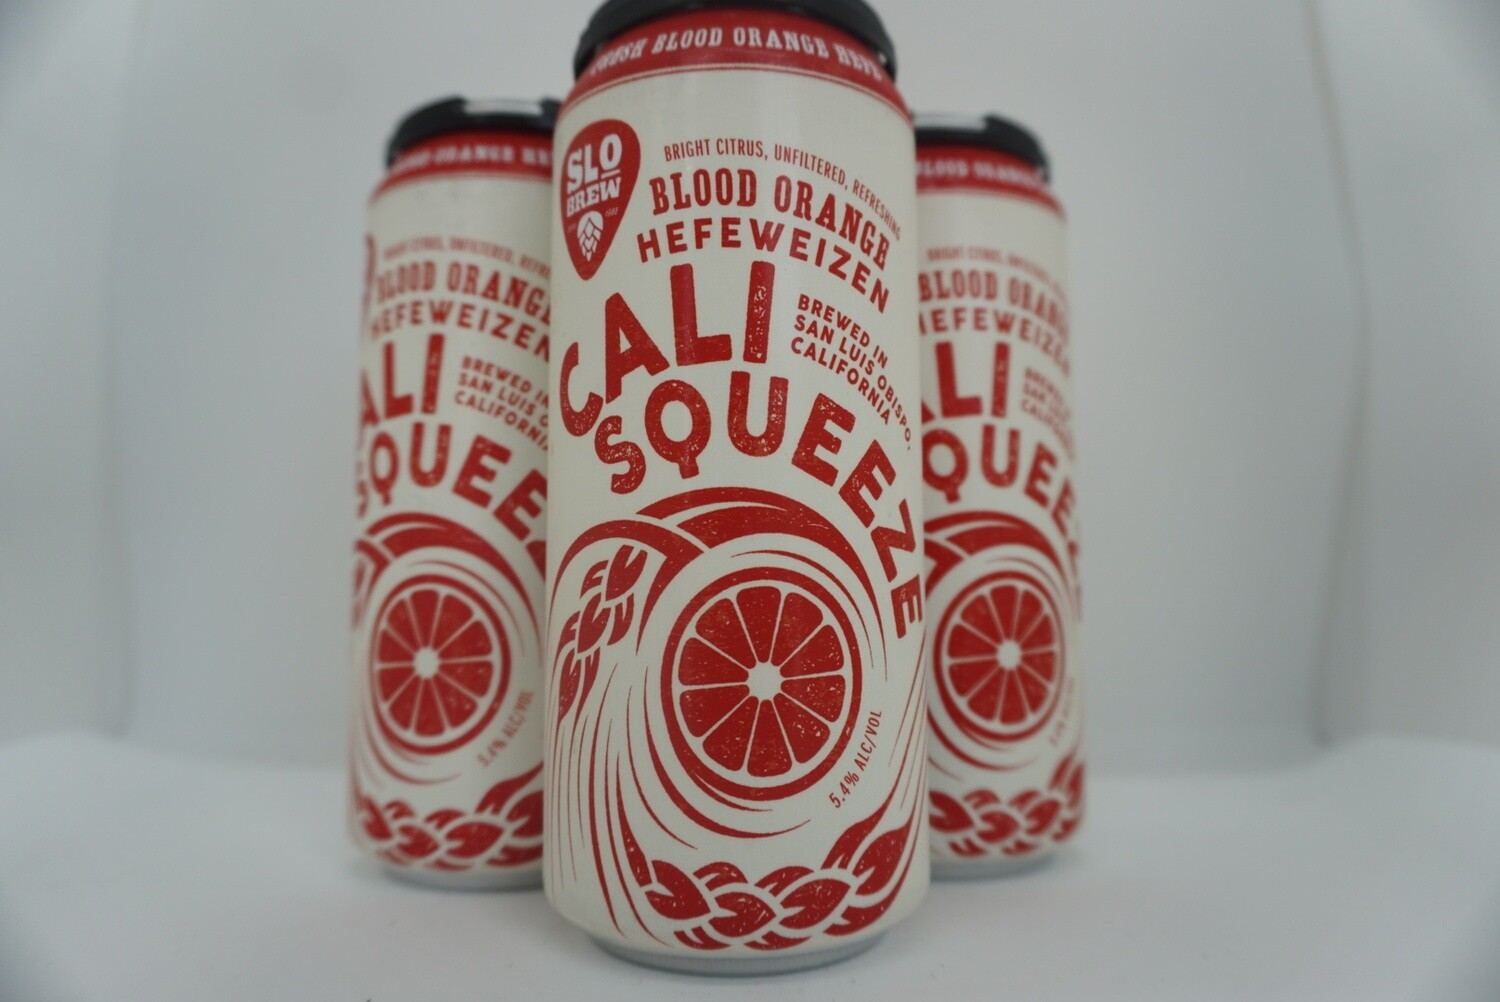 Slo Brewing - Cali Squeeze Blood Orange Hefe - Hefeweizen - 5.4% ABV - 4 Pack